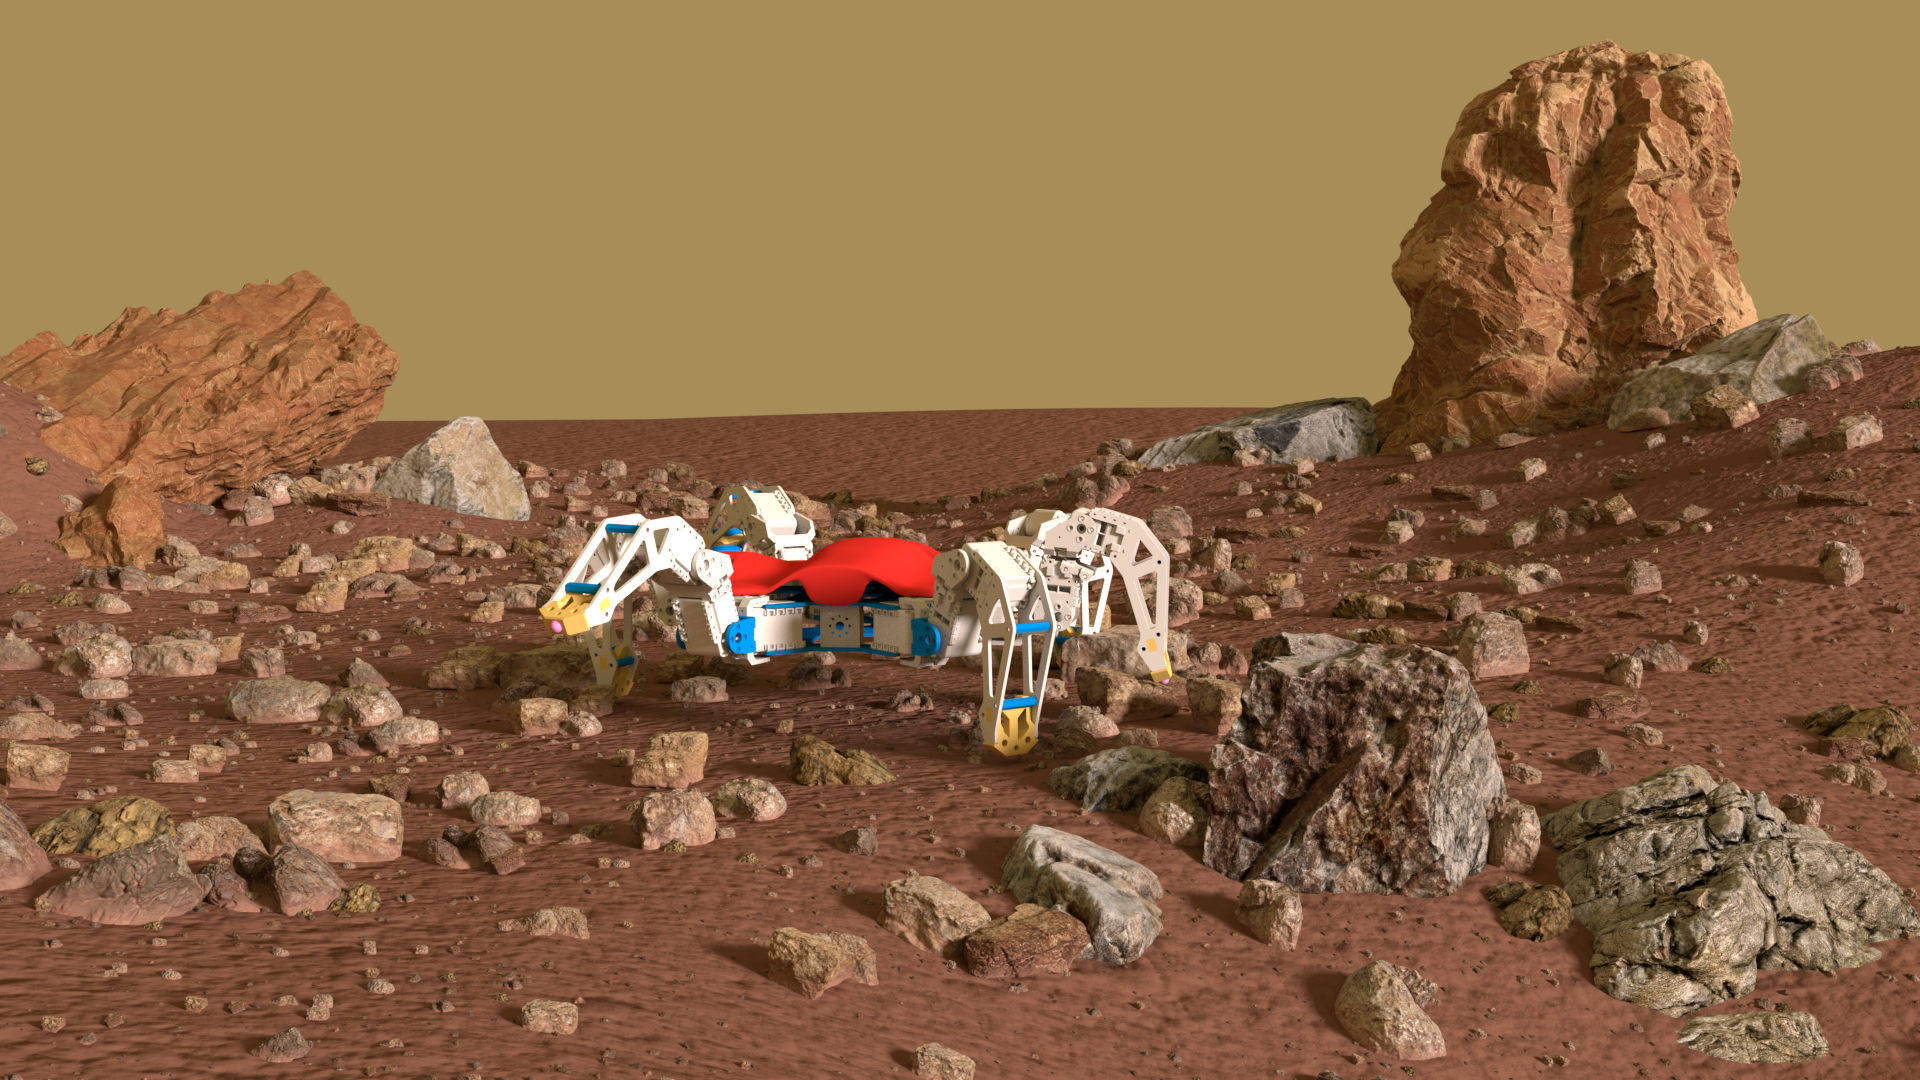 01A_NASA_Hex_rocks.png